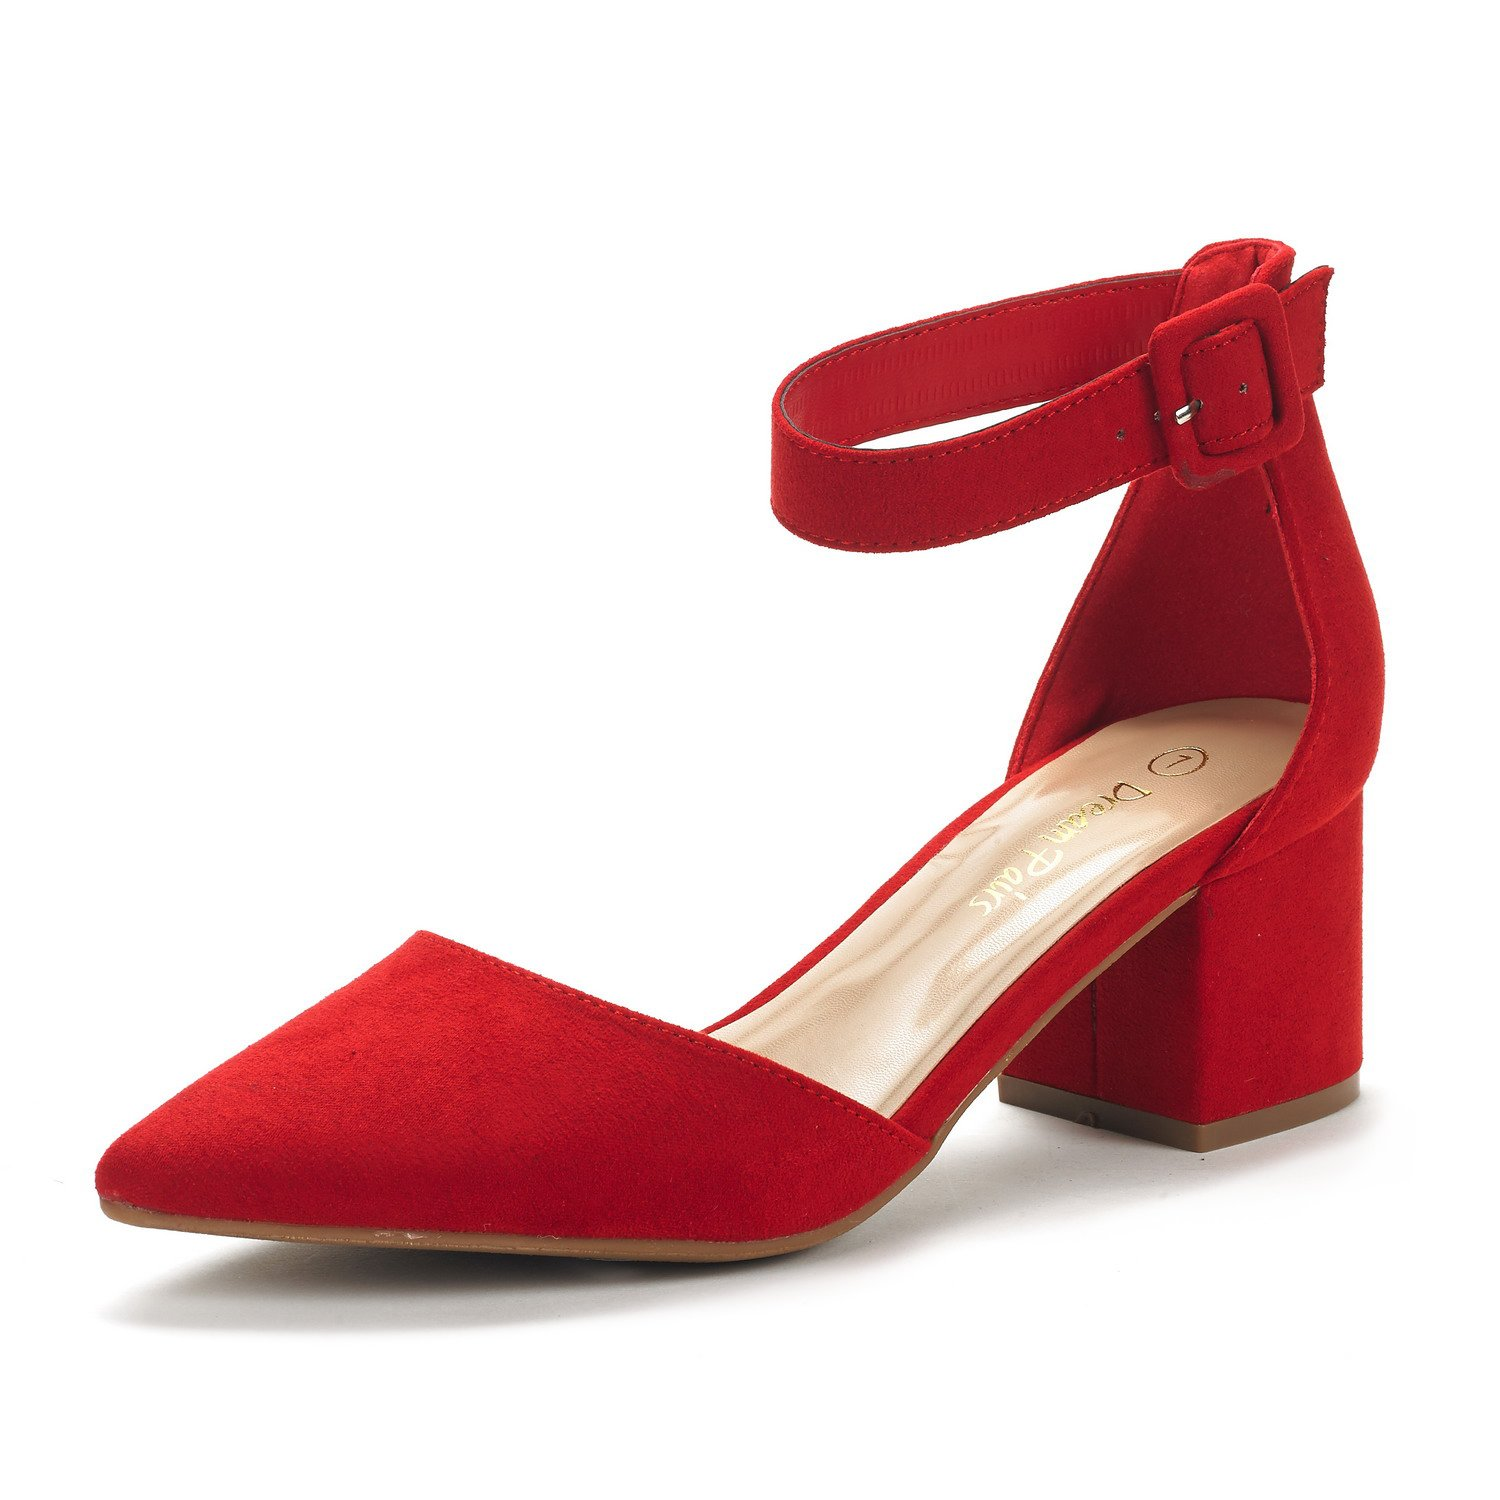 DREAM PAIRS Women's Annee Red Suede Low Heel Pump Shoes - 6.5 M US